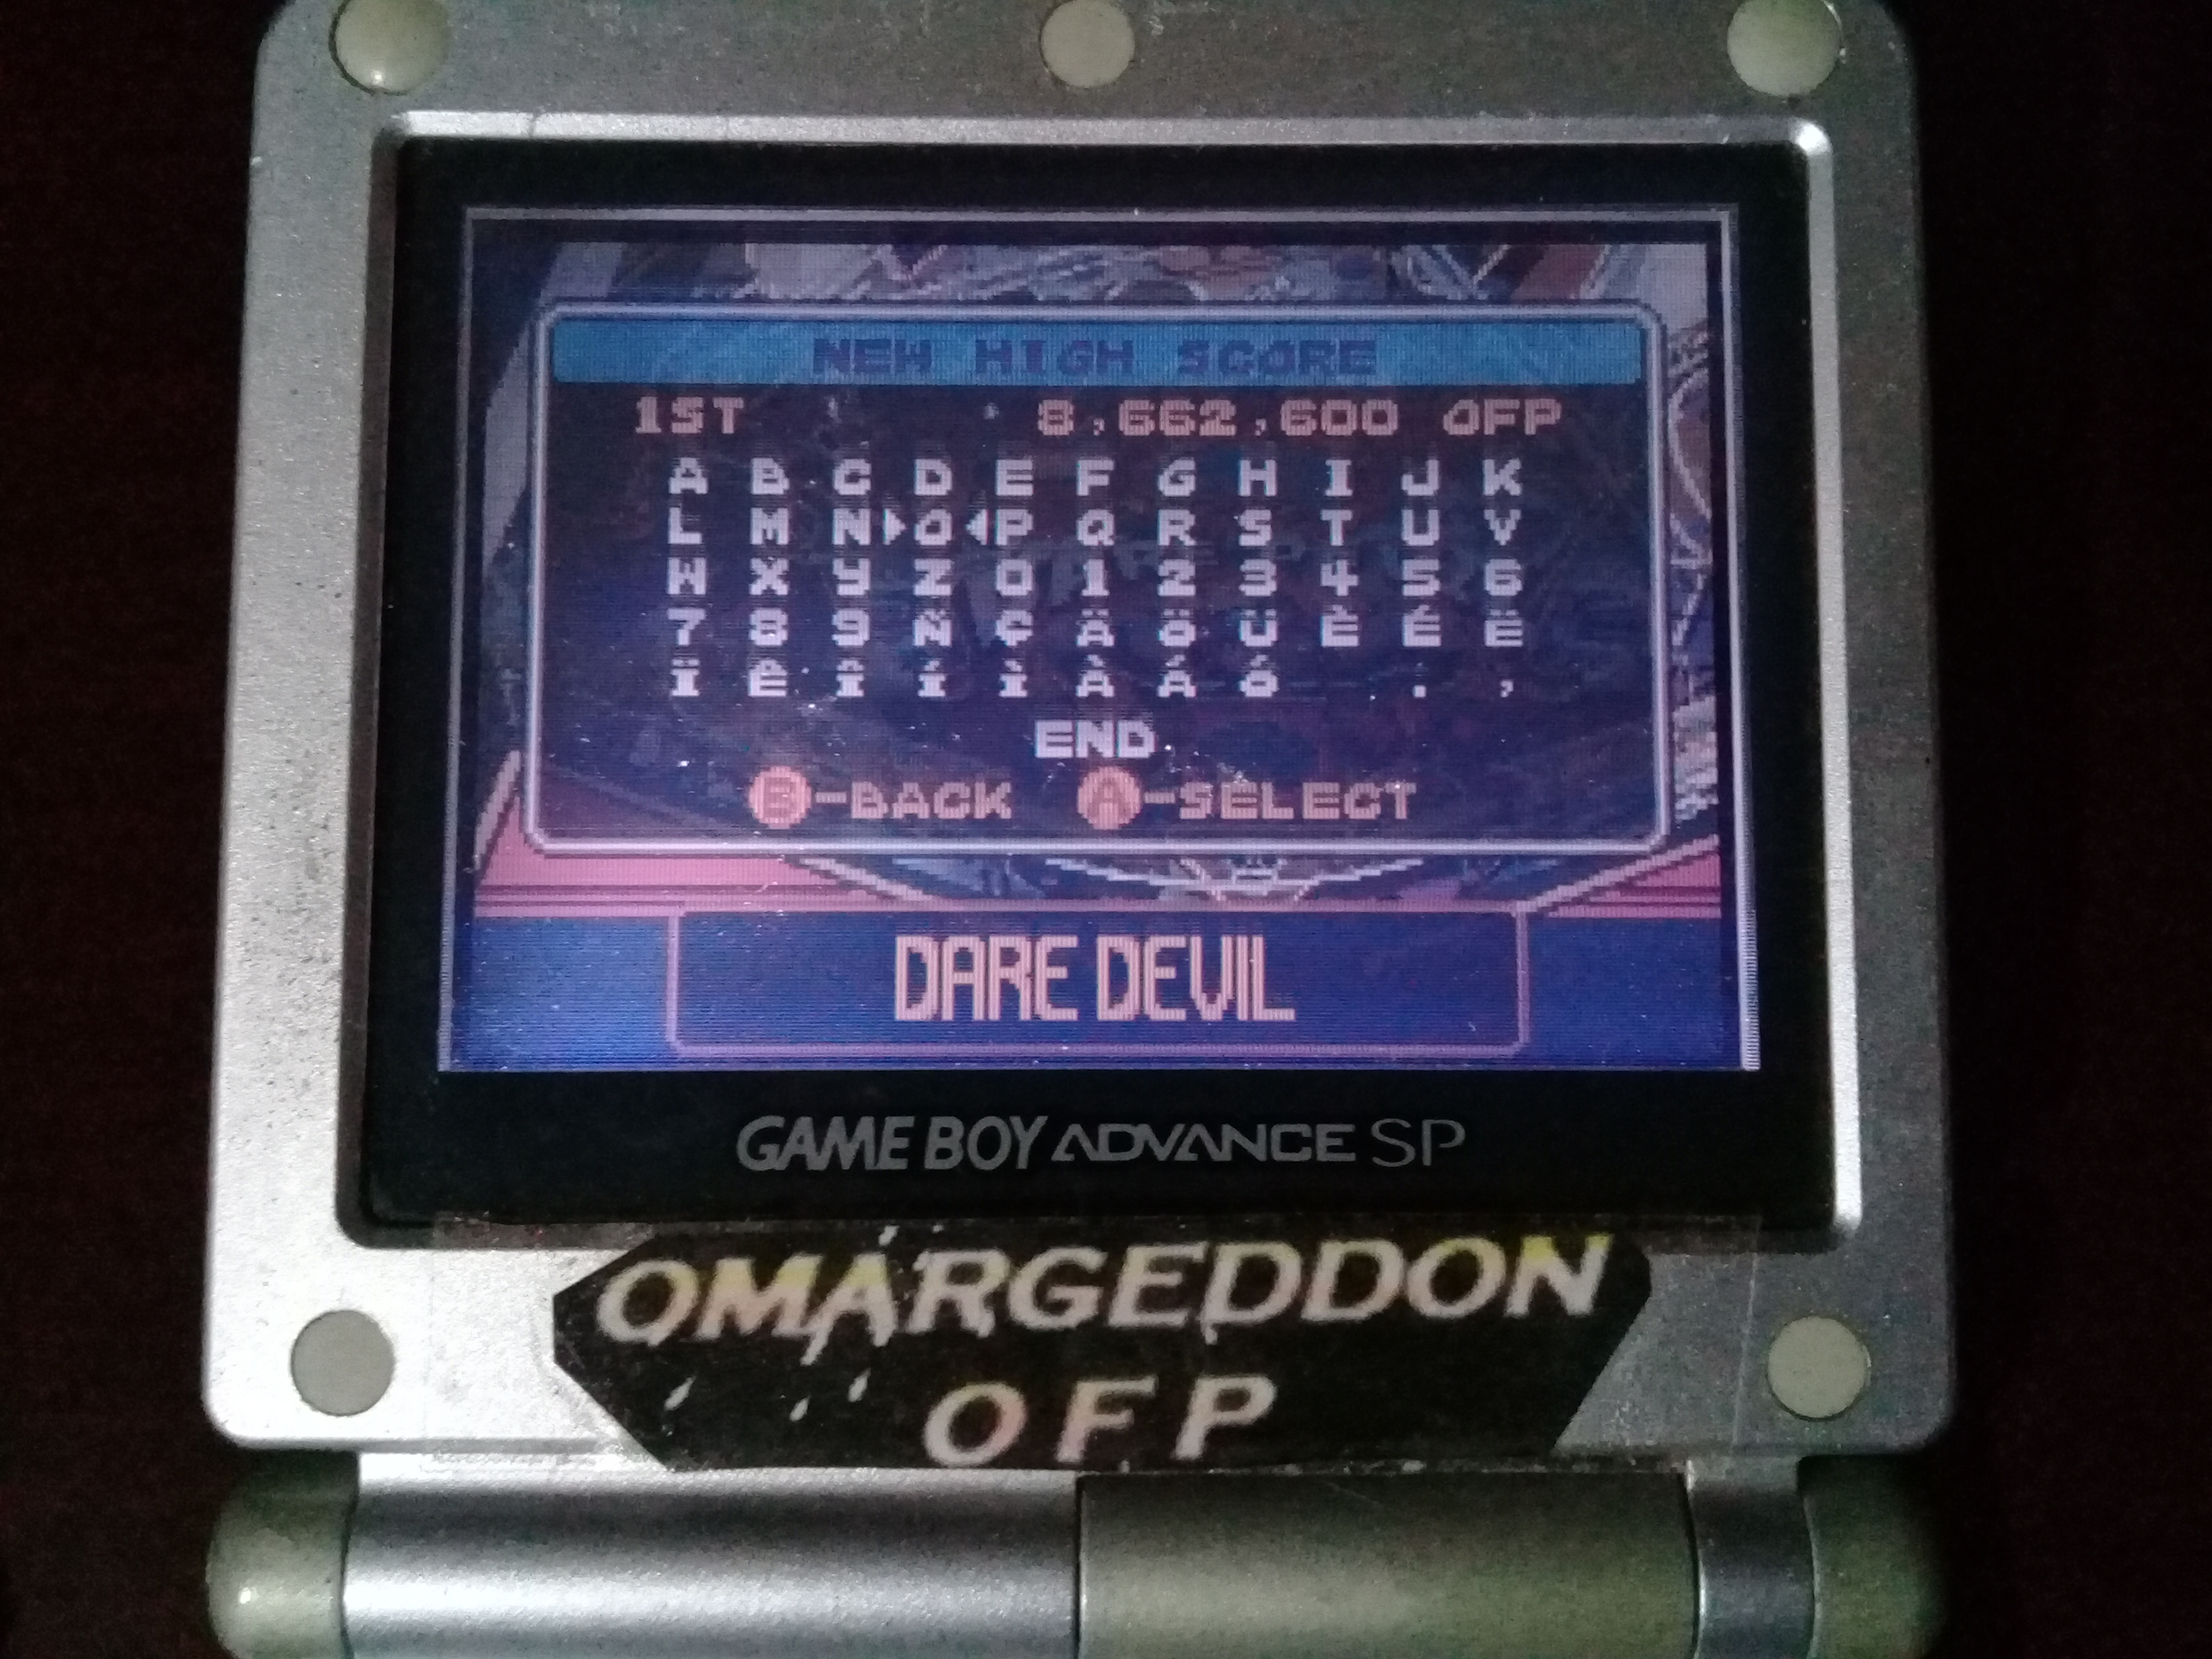 omargeddon: Pinball Advance: Dare Devil [3 Balls] [Medium] (GBA) 8,662,600 points on 2019-09-15 11:33:08